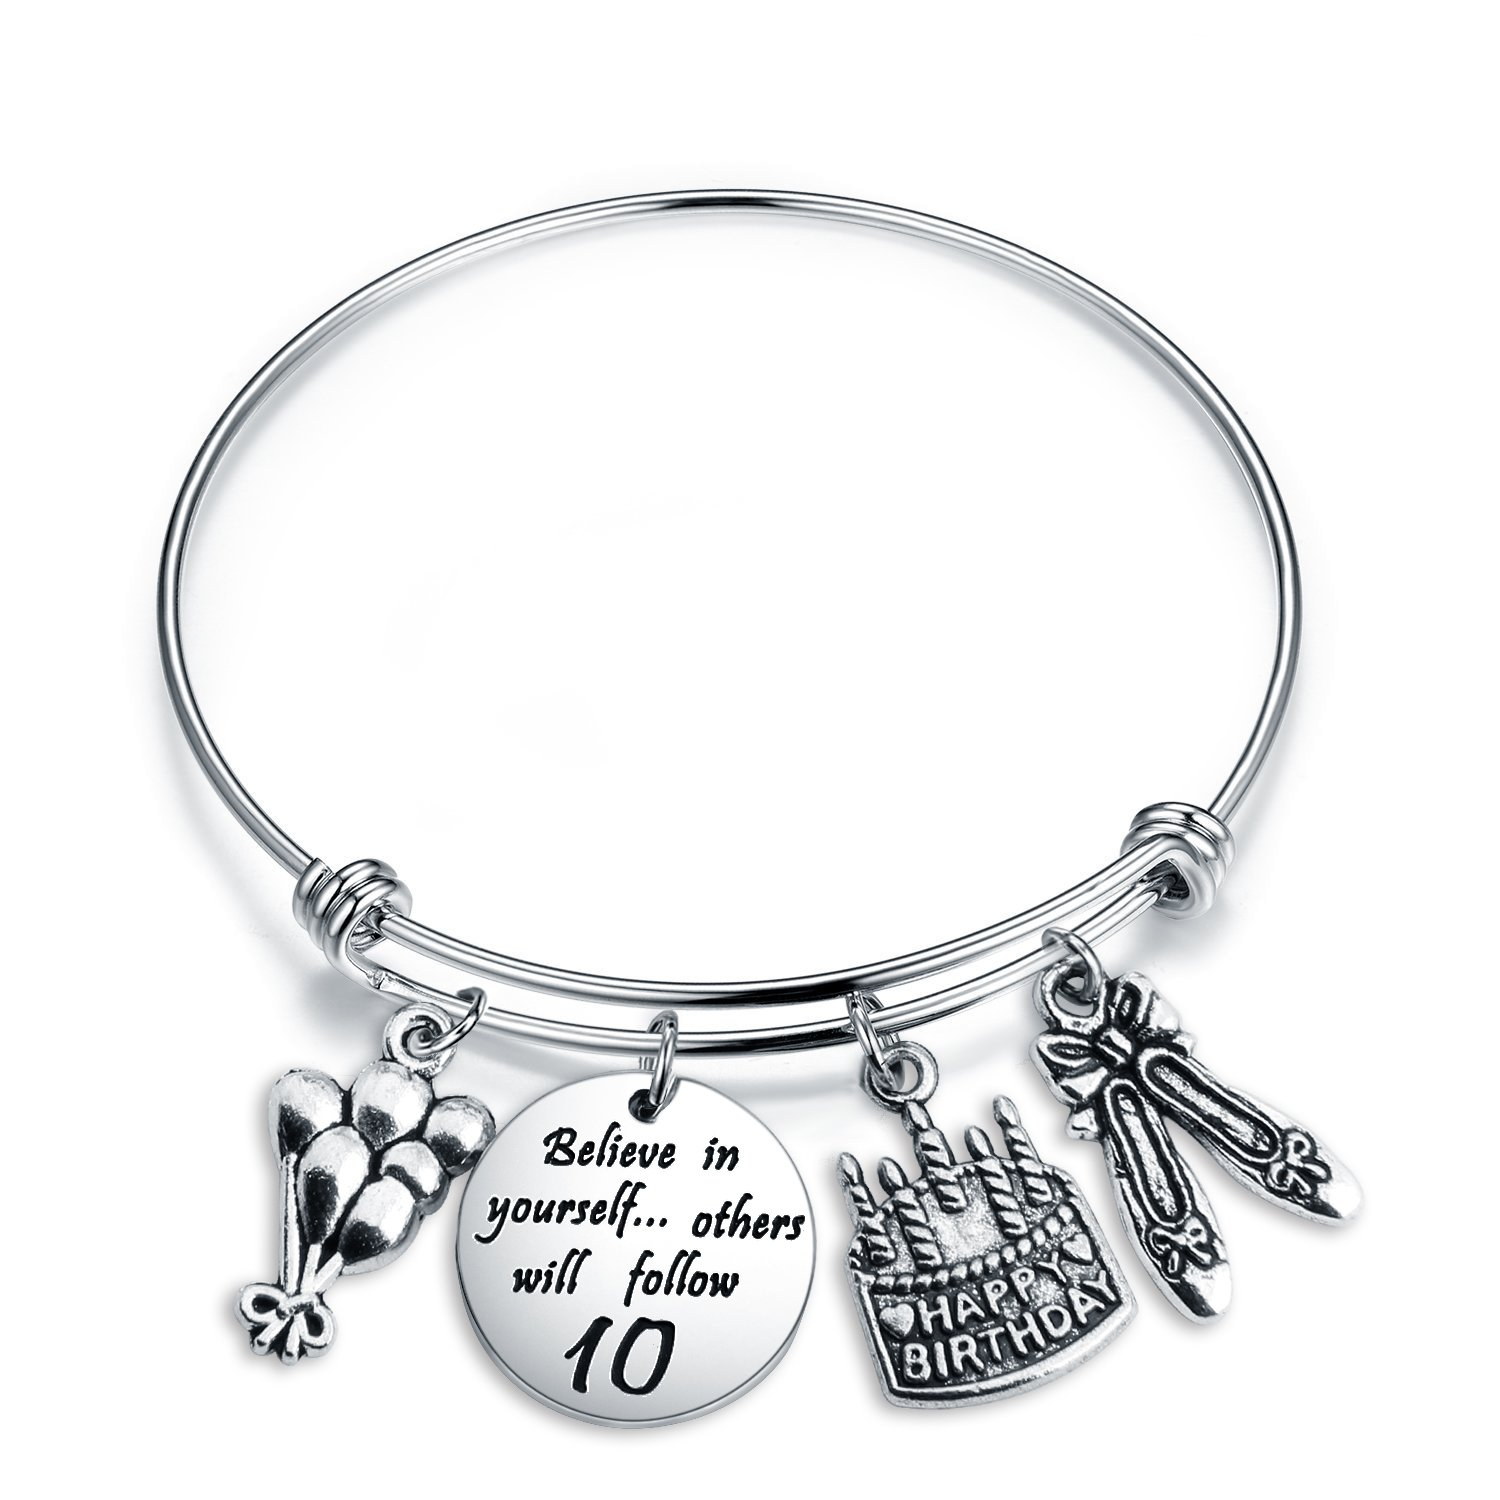 ENSIANTH Birthday Gift for Her Adjustable Birthday Bracelet Bangle with Birthday Cake Charm,10th 12th Sweet 16th 18th 21st 30th 39th 40th 50th Bangle gift,Anniversary Gift